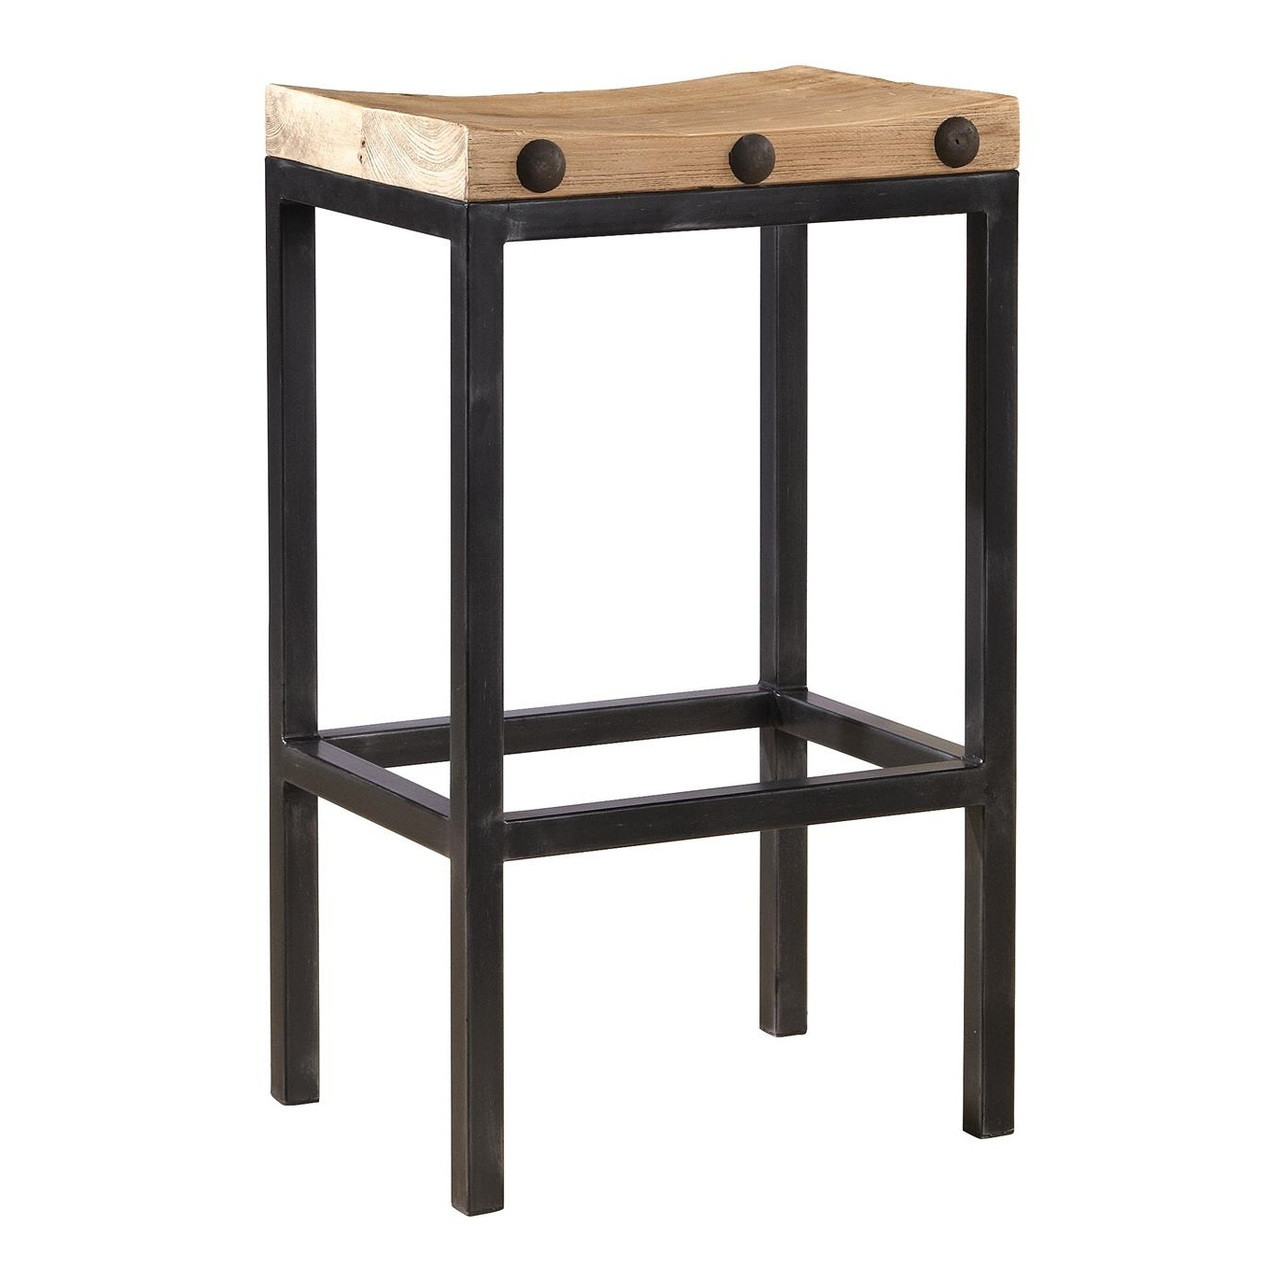 Superb Wilber Reclaimed Elm Wood And Iron Bar Stool Bralicious Painted Fabric Chair Ideas Braliciousco